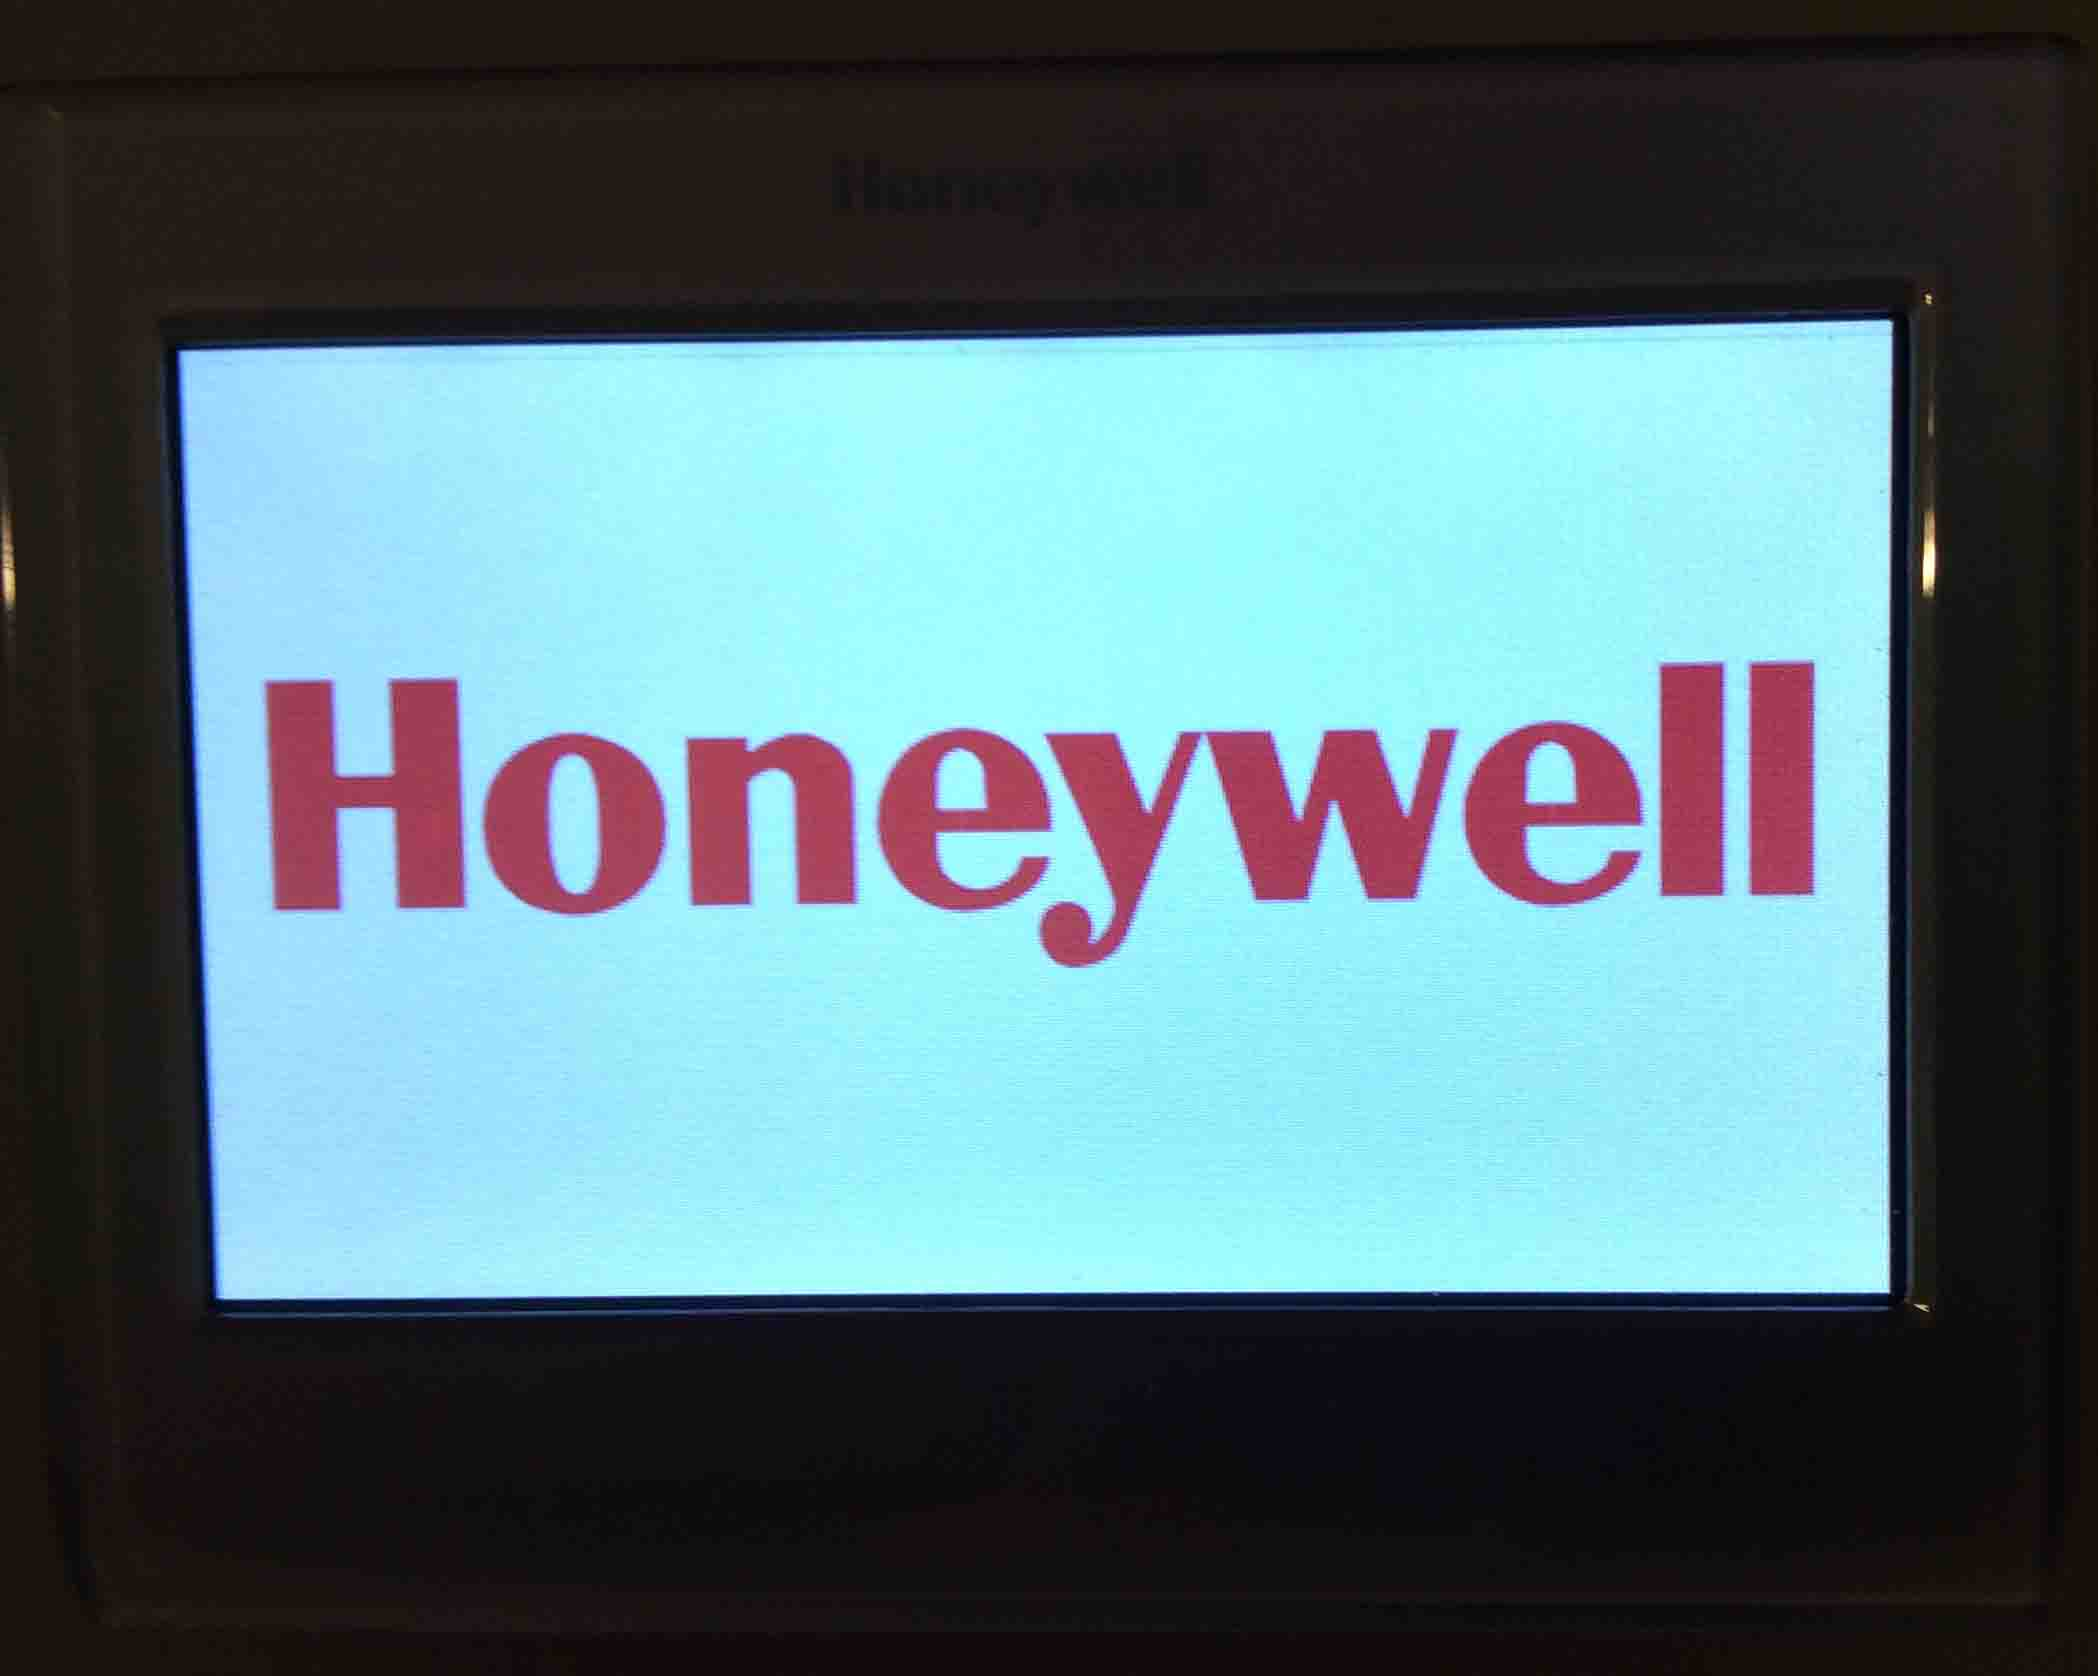 Honeywell Smart Thermostat Wiring Instructions Rth9580wf Toms Tek Home Picture Of The Displaying Boot Screen